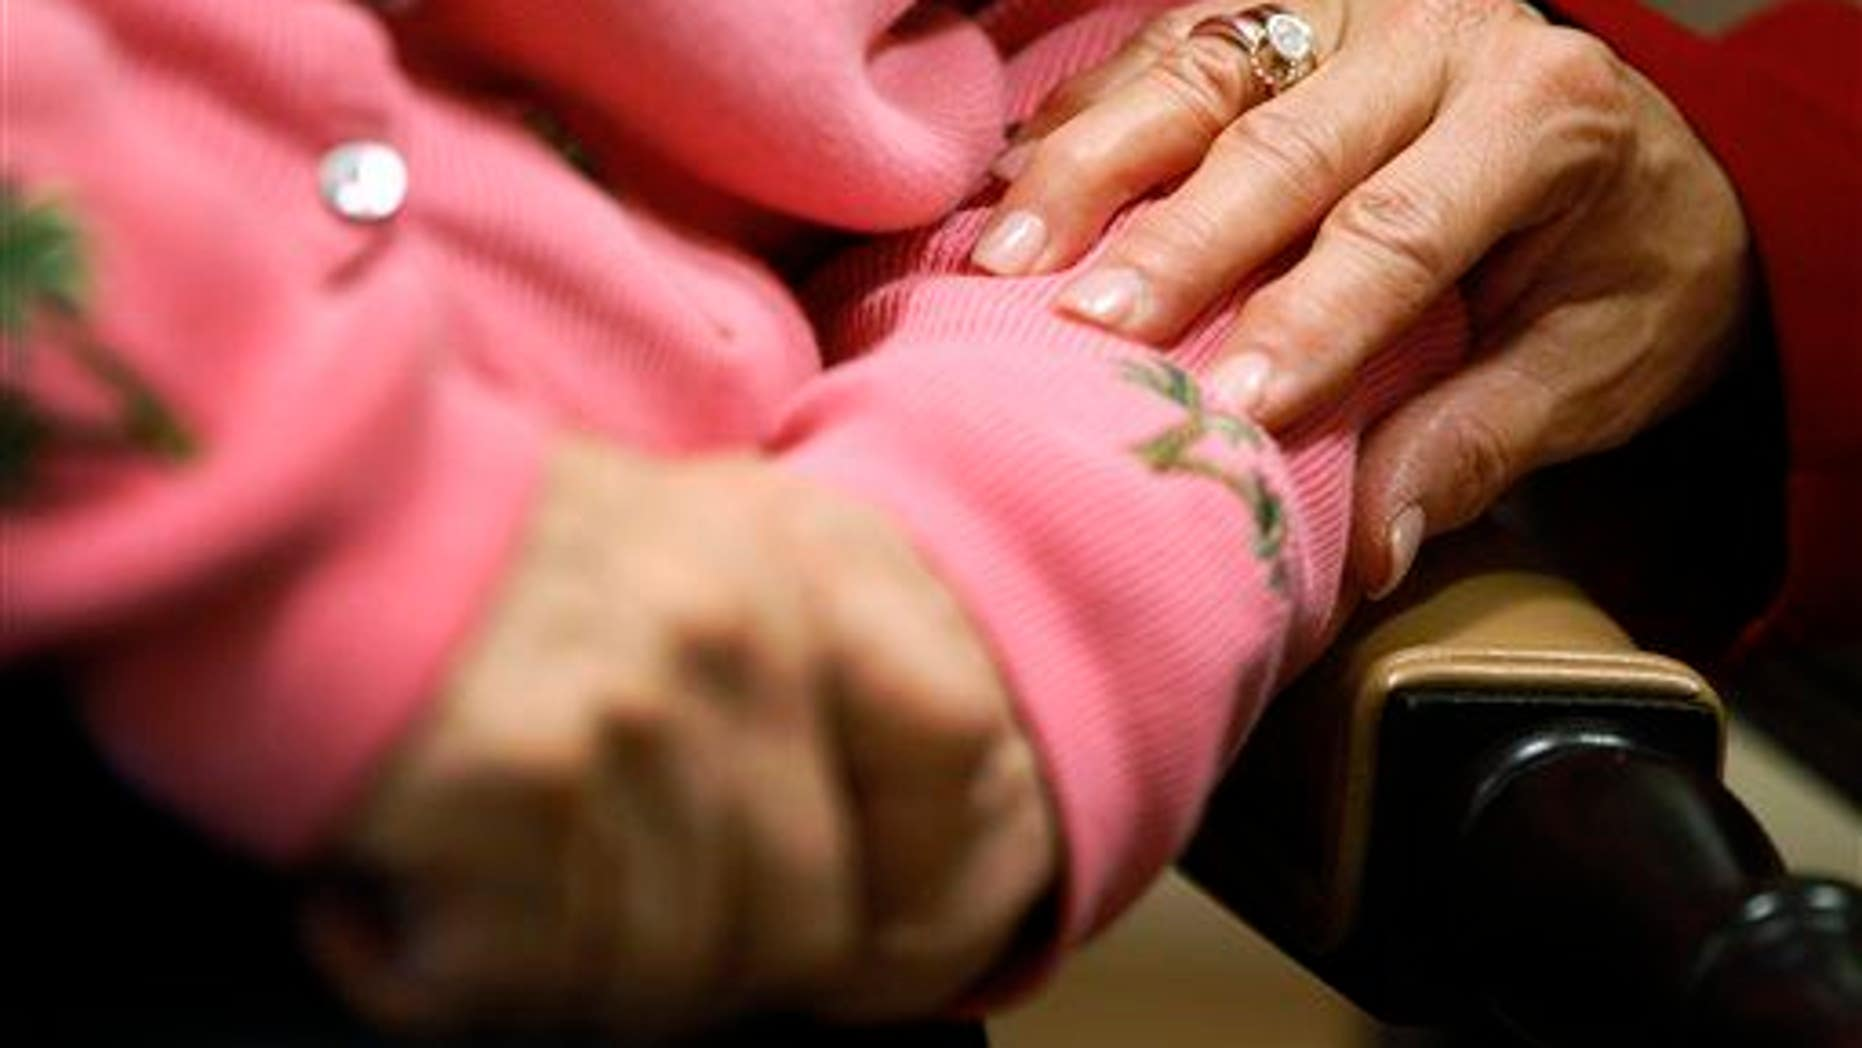 In this 2012 file photo, the director of an Alzheimer's assisted-living facility in Washington puts her hand on the arm of a resident.